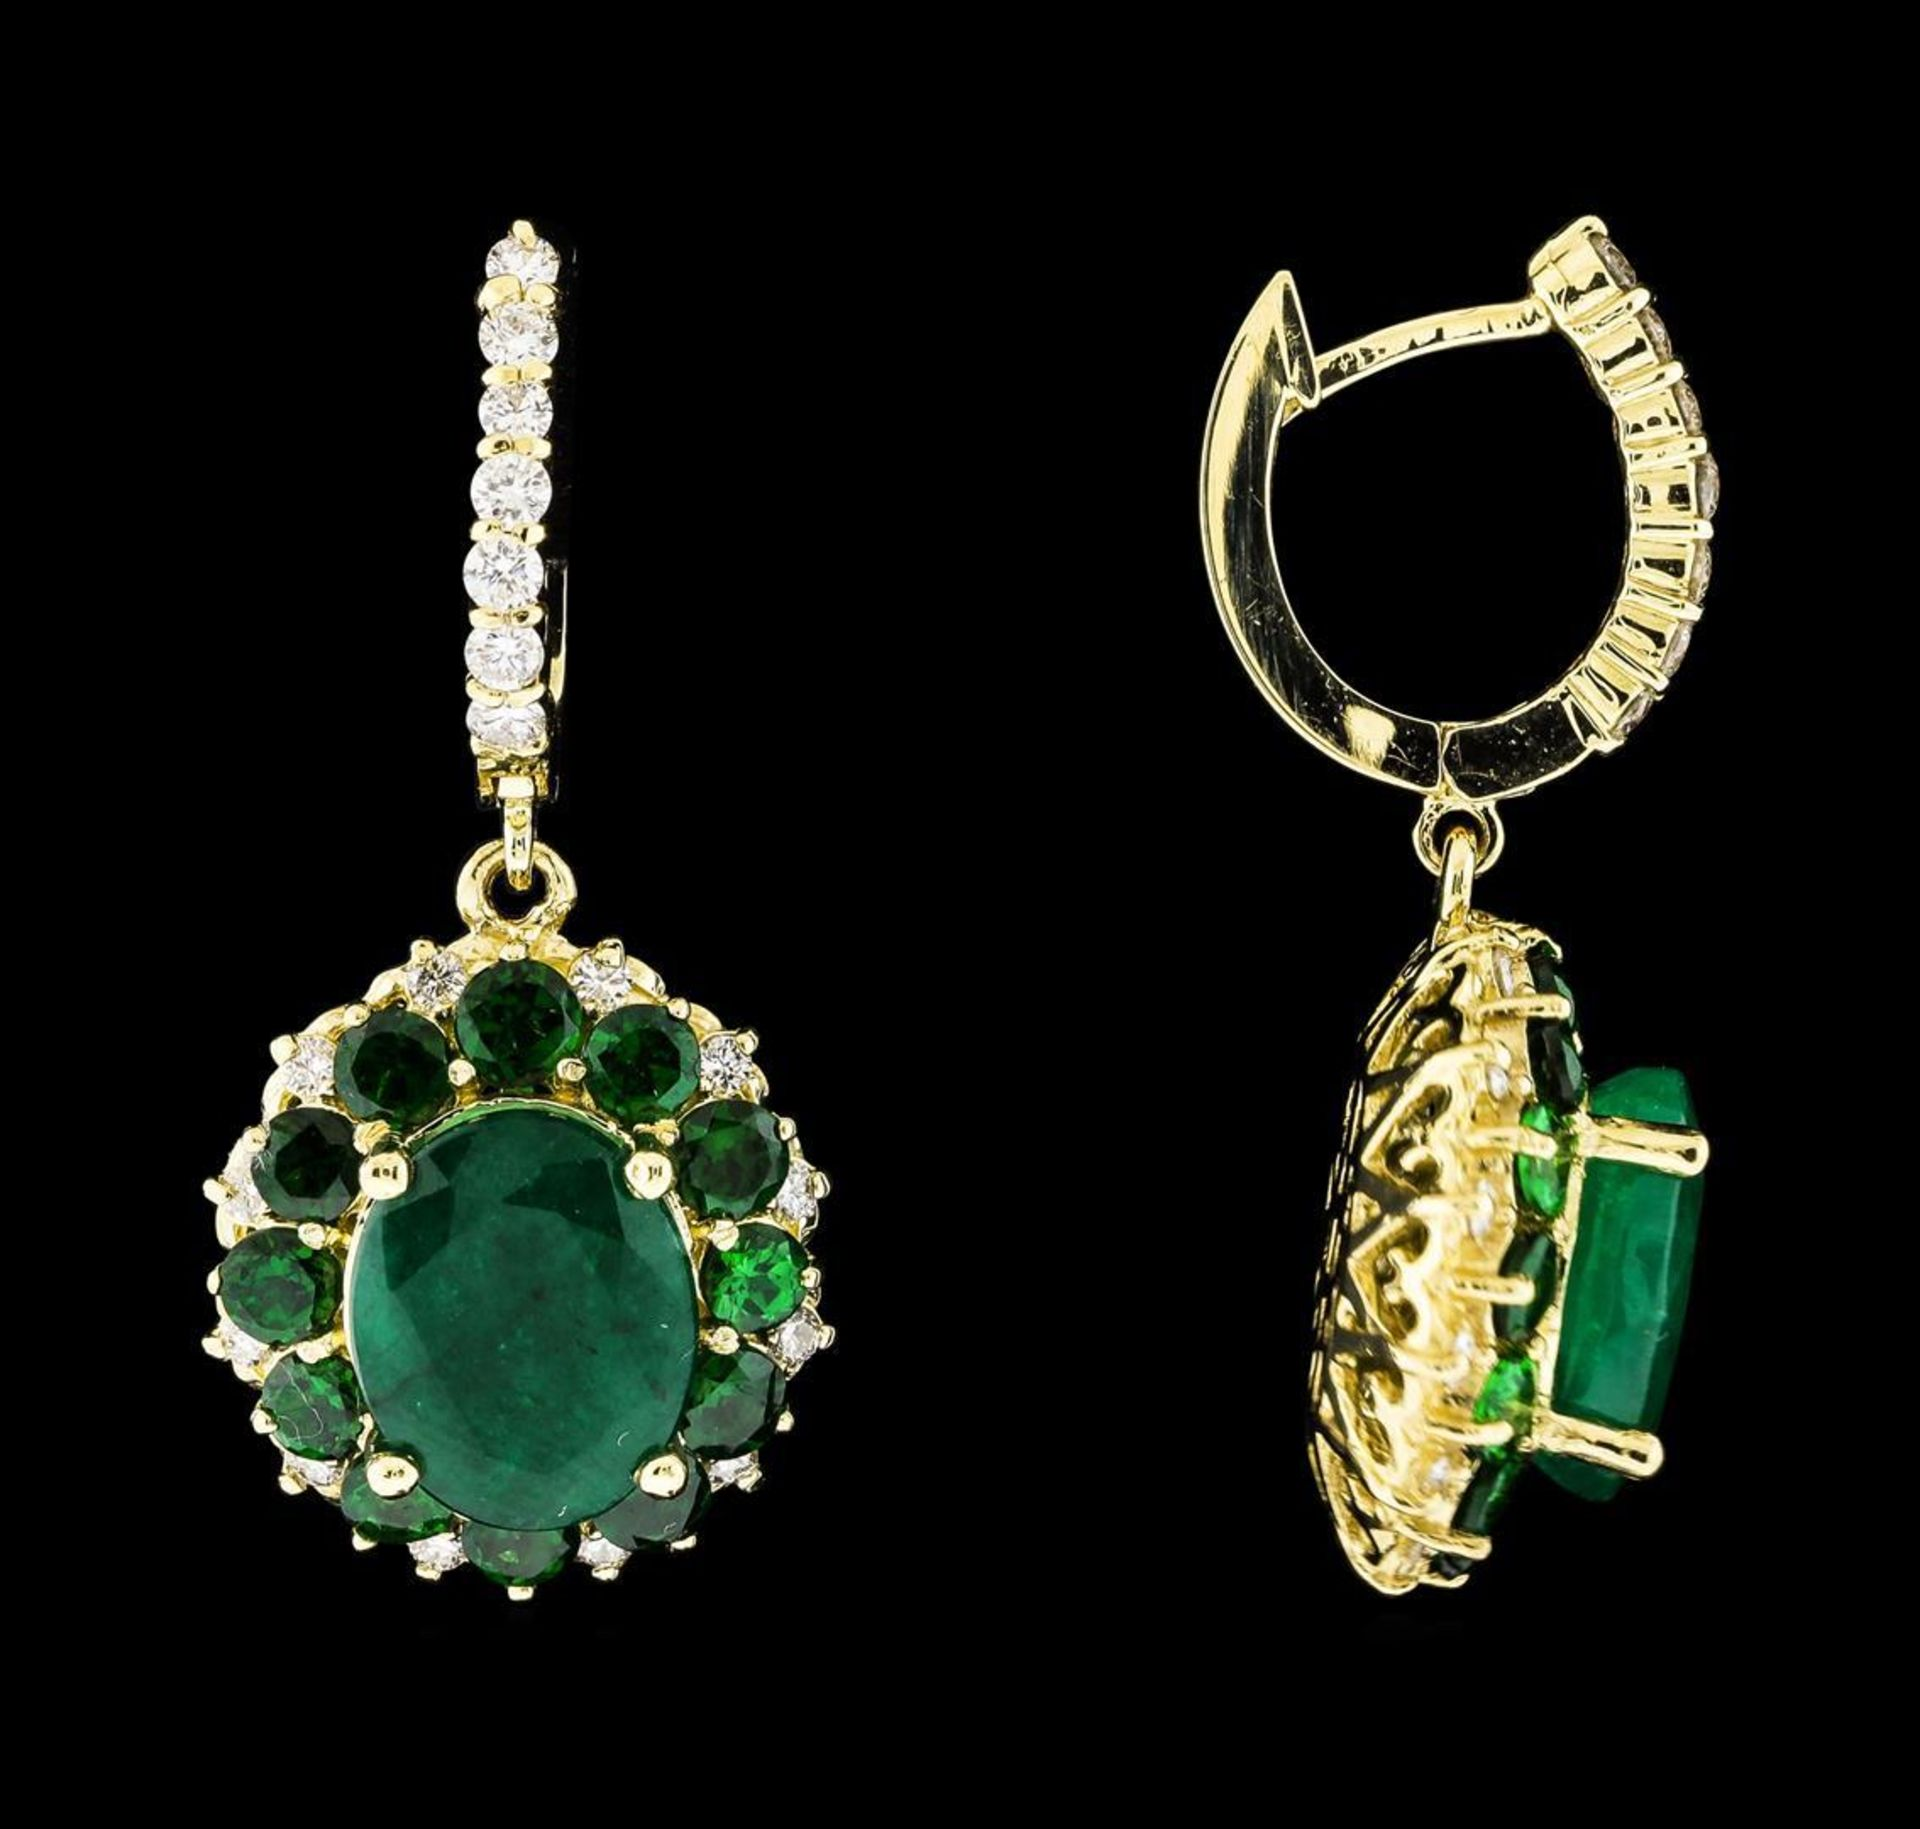 9.71 ctw Emerald and Diamond Earrings - 14KT Yellow Gold - Image 2 of 4